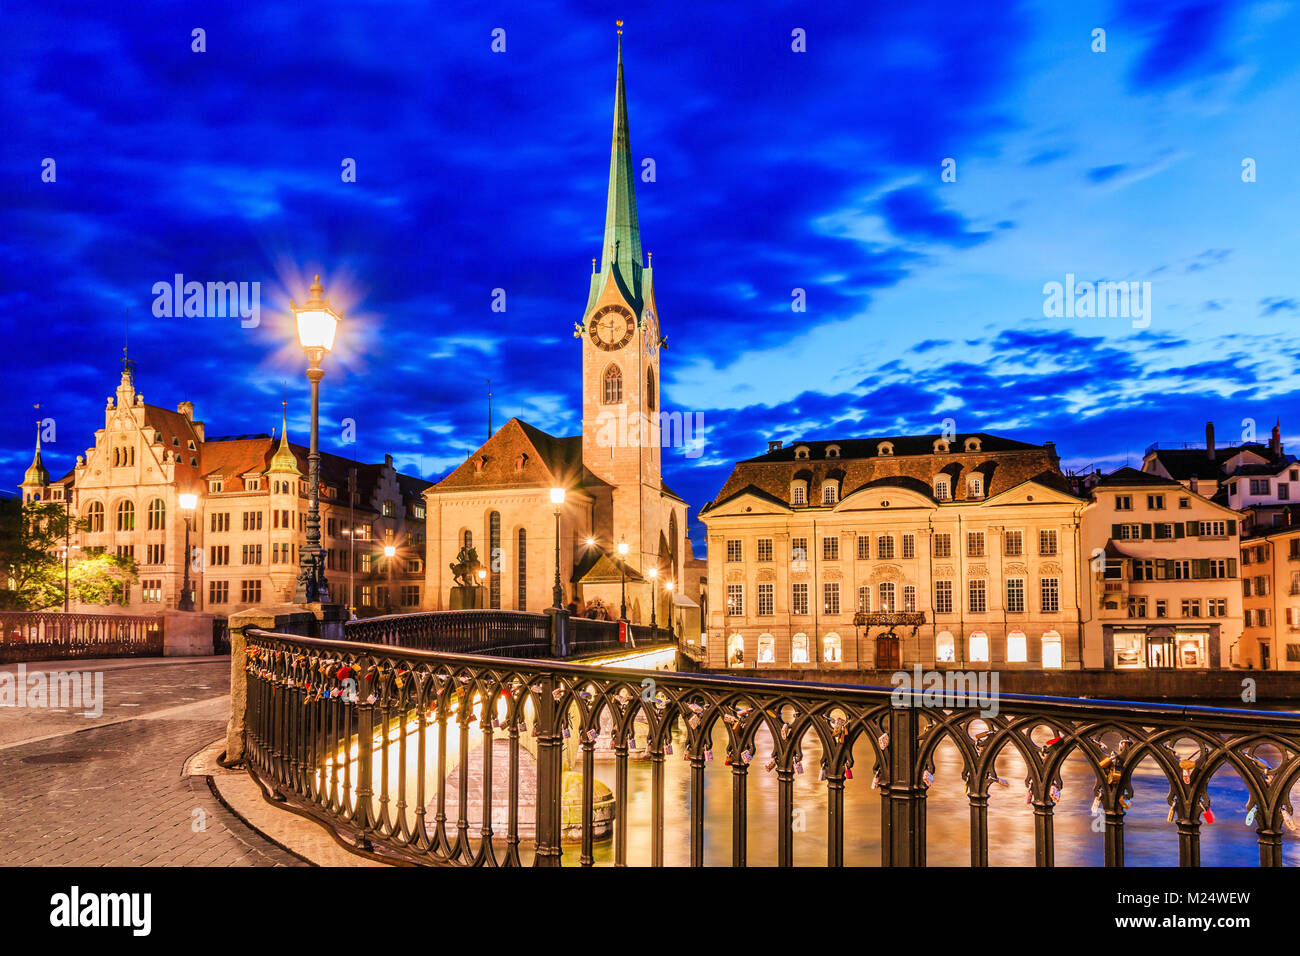 Lucerne, Switzerland. View of city center and Fraumunster Church at night. - Stock Image